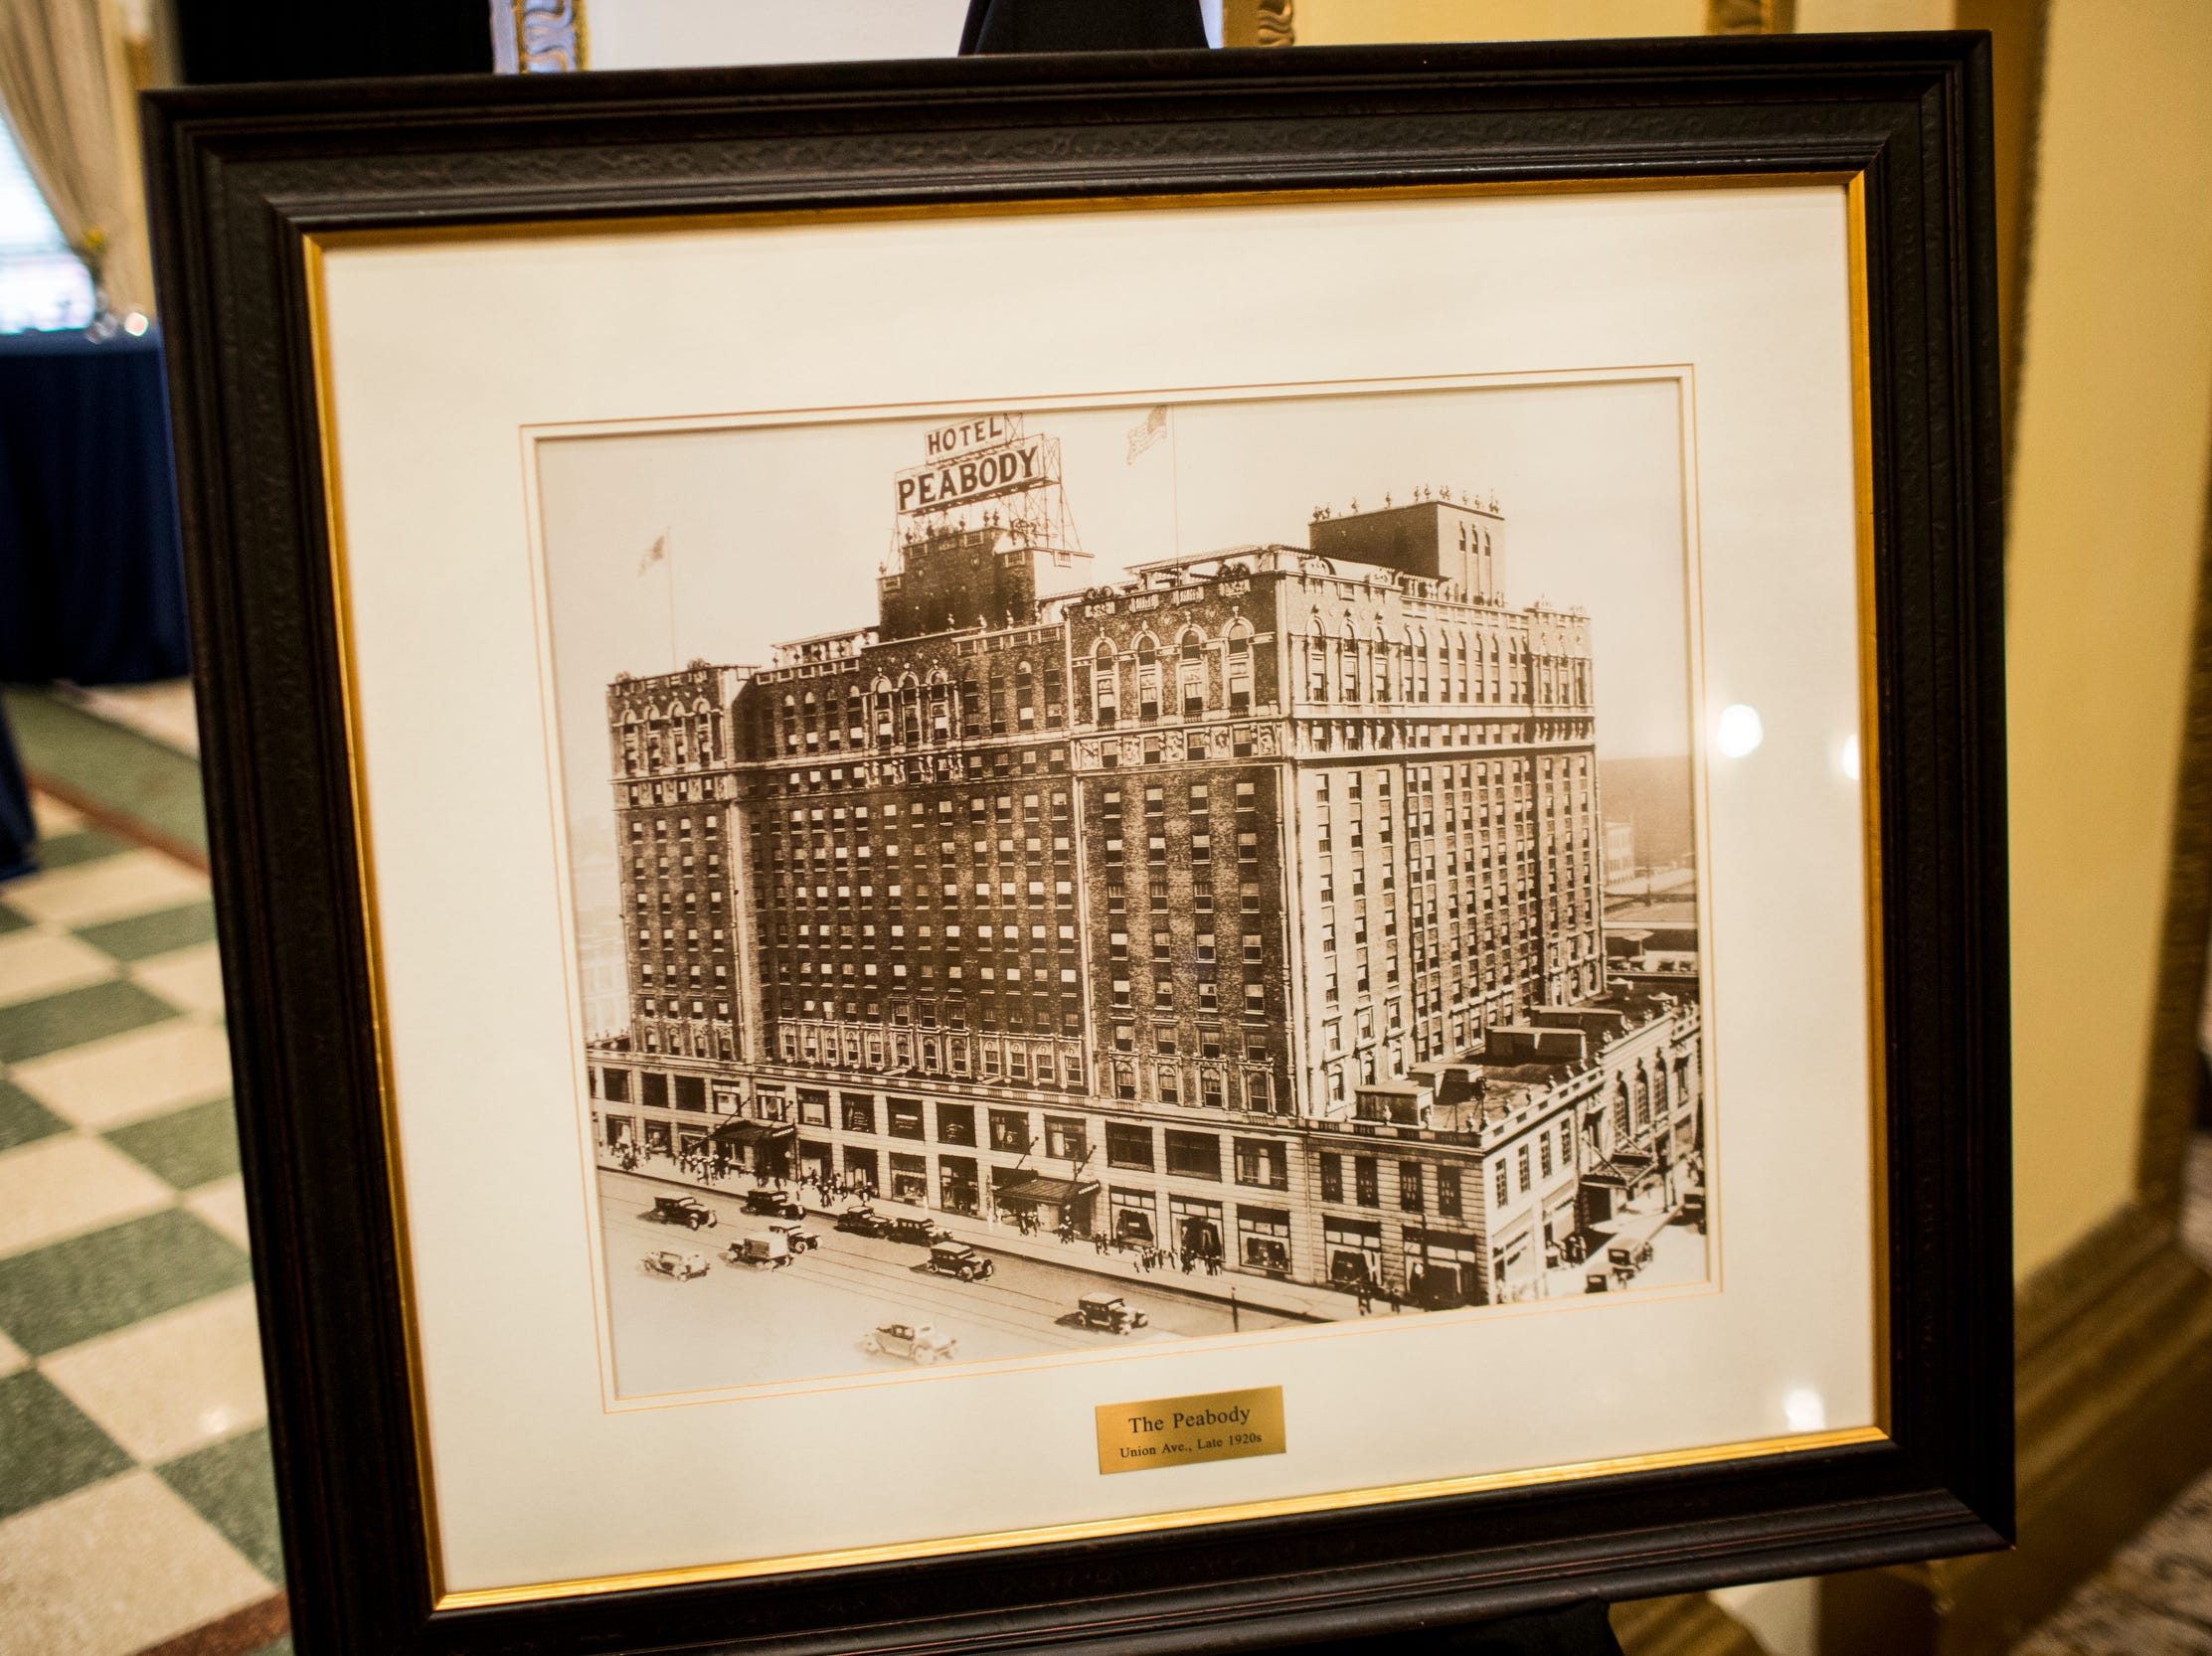 February 06, 2019 - A historic photo of The Peabody was on display during The Peabody 150th anniversary media launch party. The Peabody Memphis will celebrate its 150th anniversary in 2019 with a series of special offers and events.